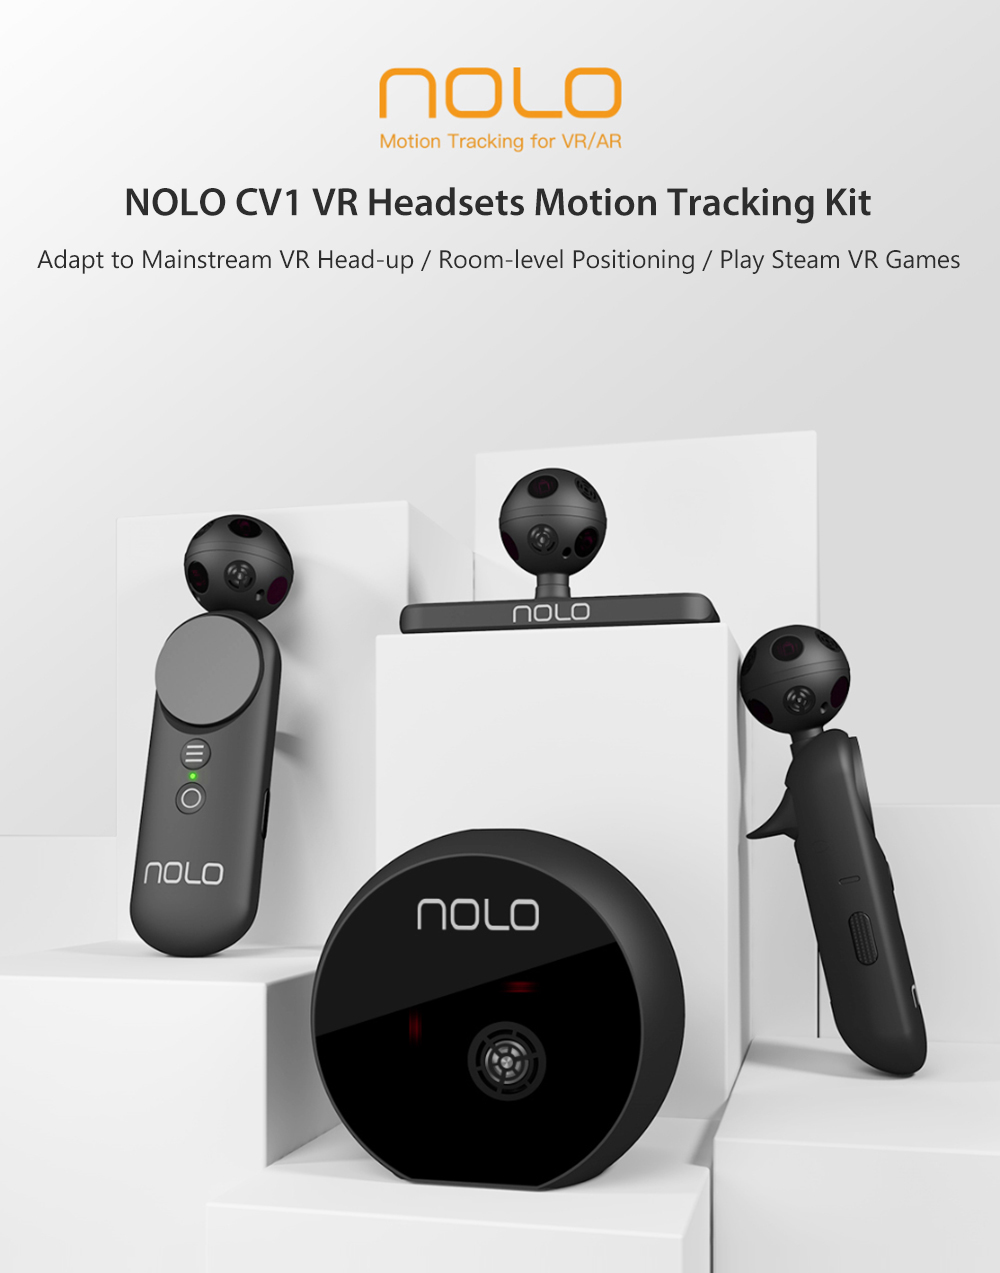 NOLO CV1 VR Console Controllers Motion Tracking Kit for Mobile and PC